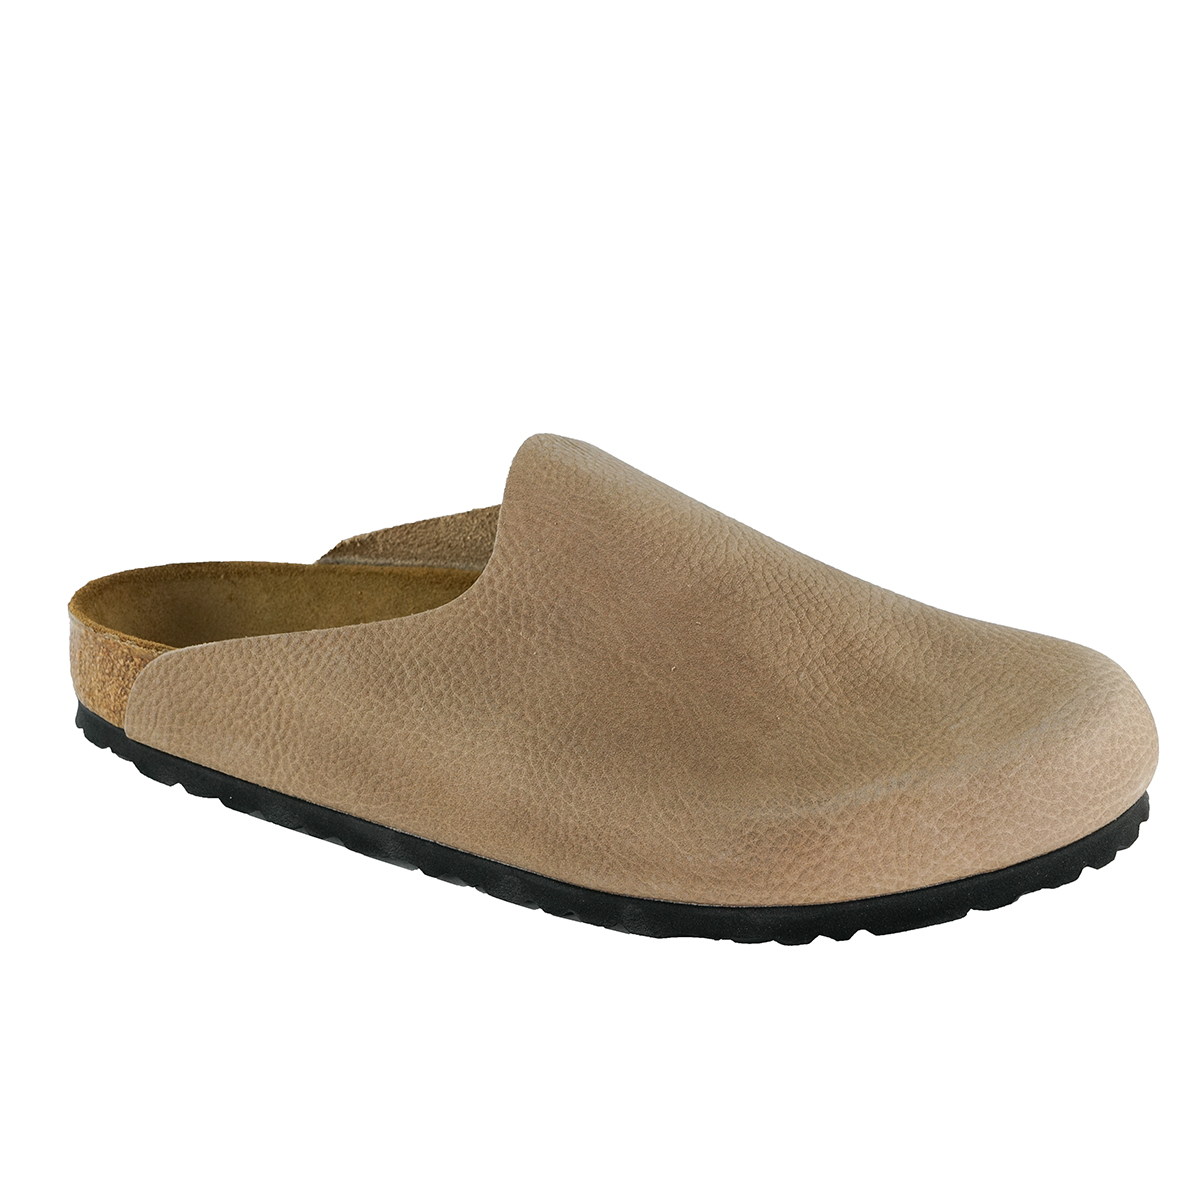 Details about Birkenstock Amsterdam Leather Clogs Steer Taupe 35 N